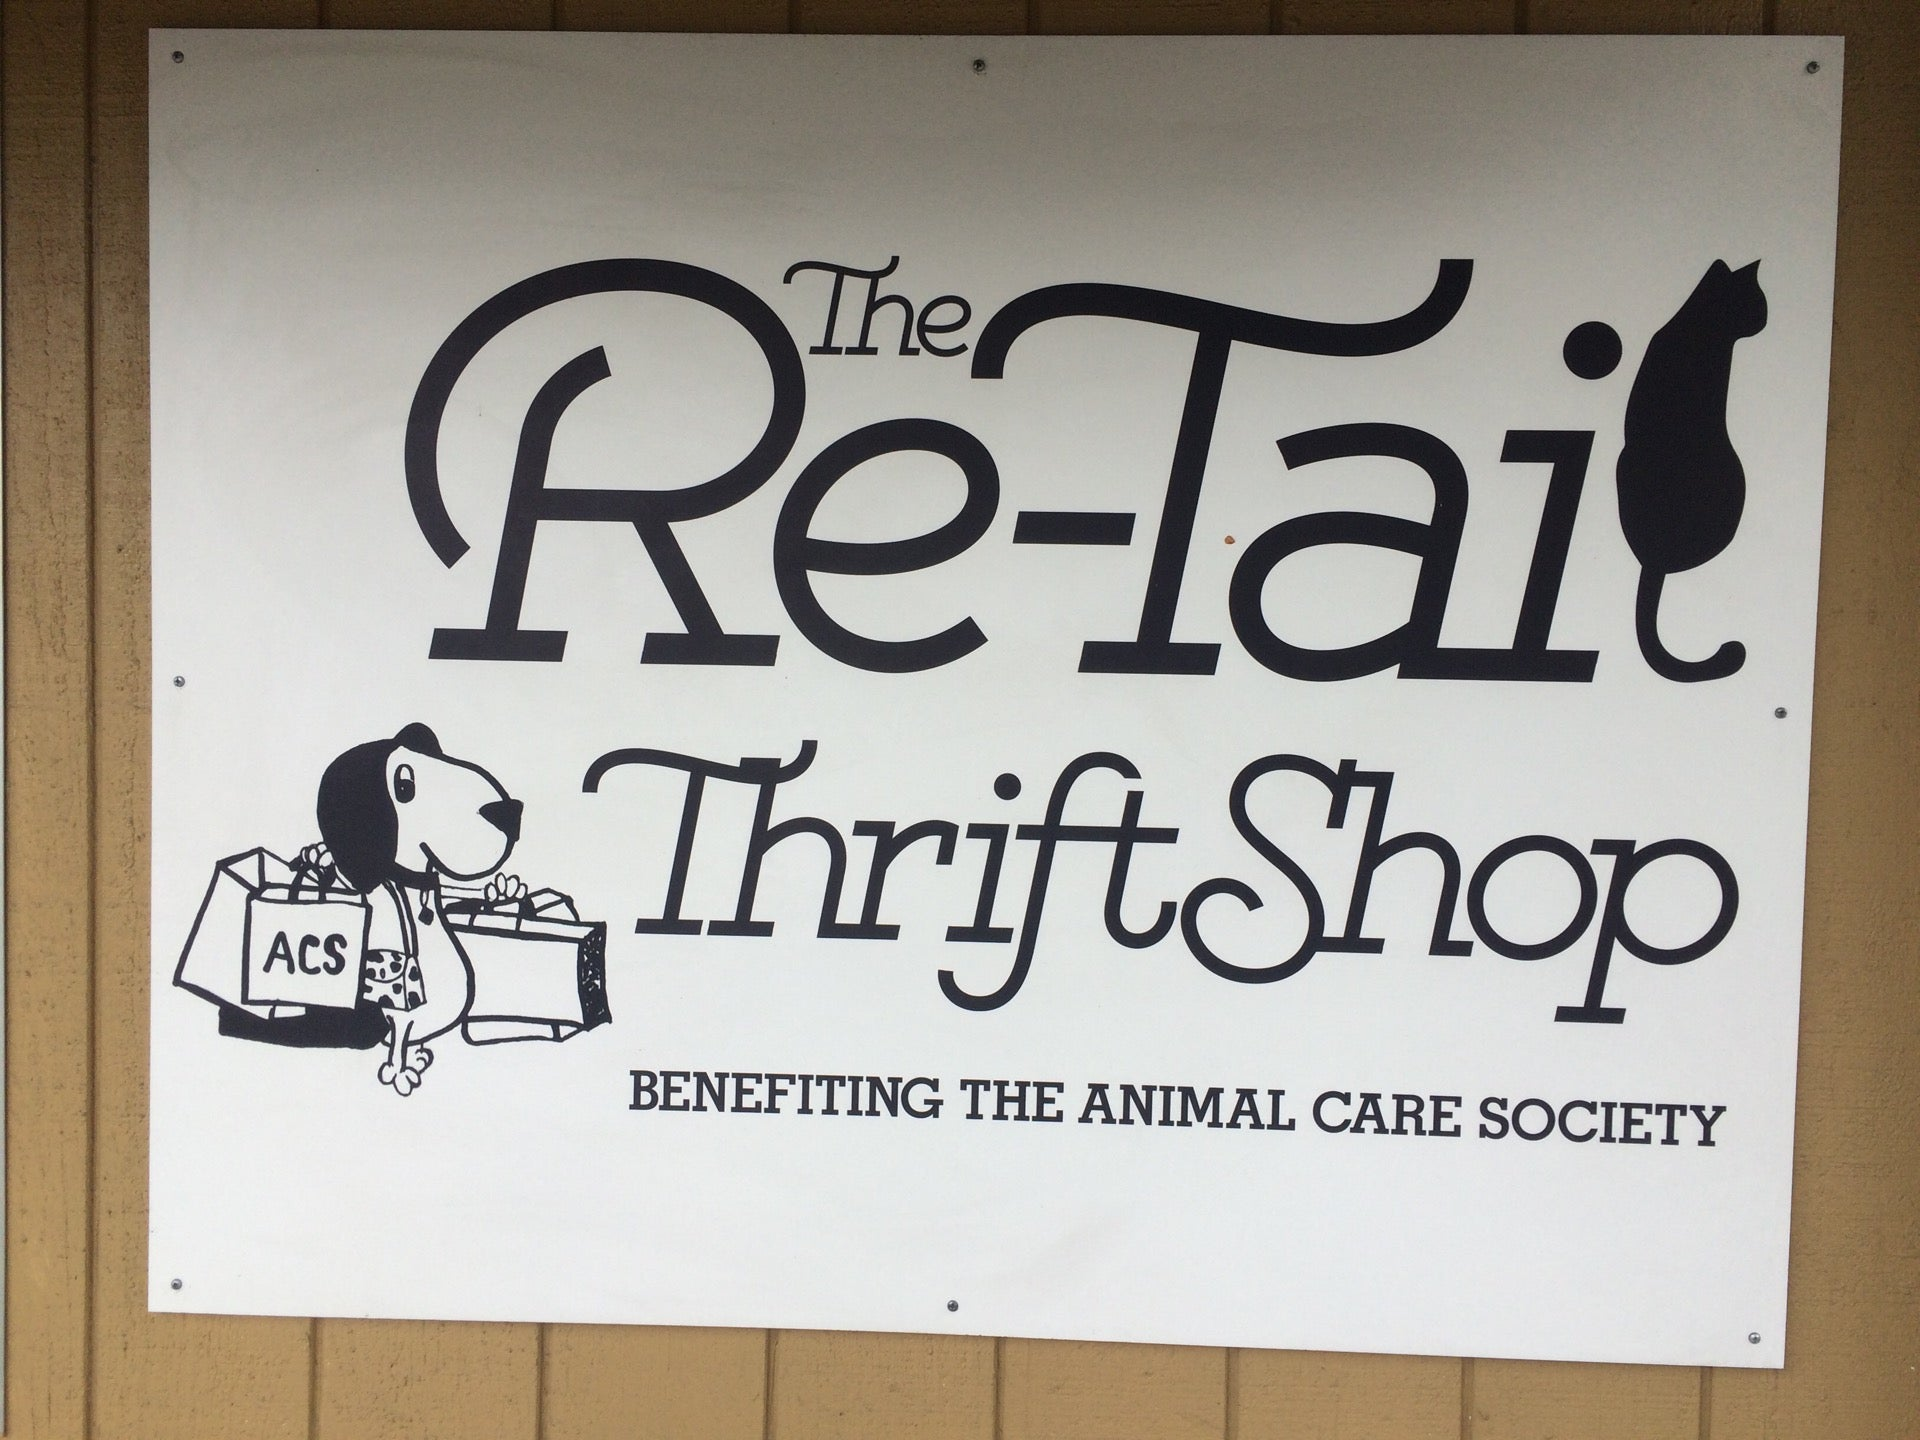 The Retail Thrift Store,